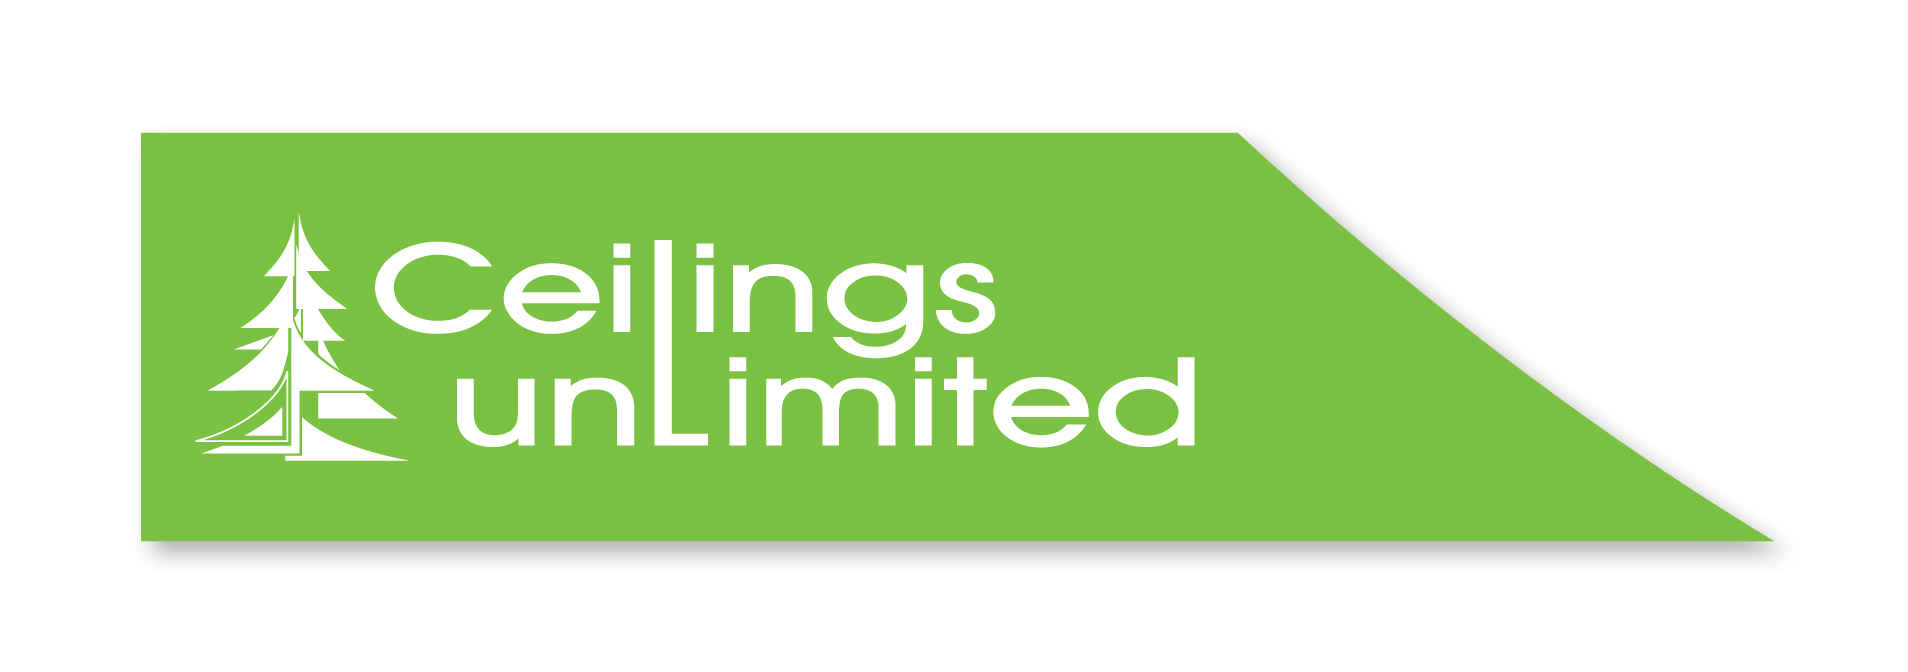 DJ1875_Ceilings_unlimited_logo_v5_ol Sponsor & Advertise